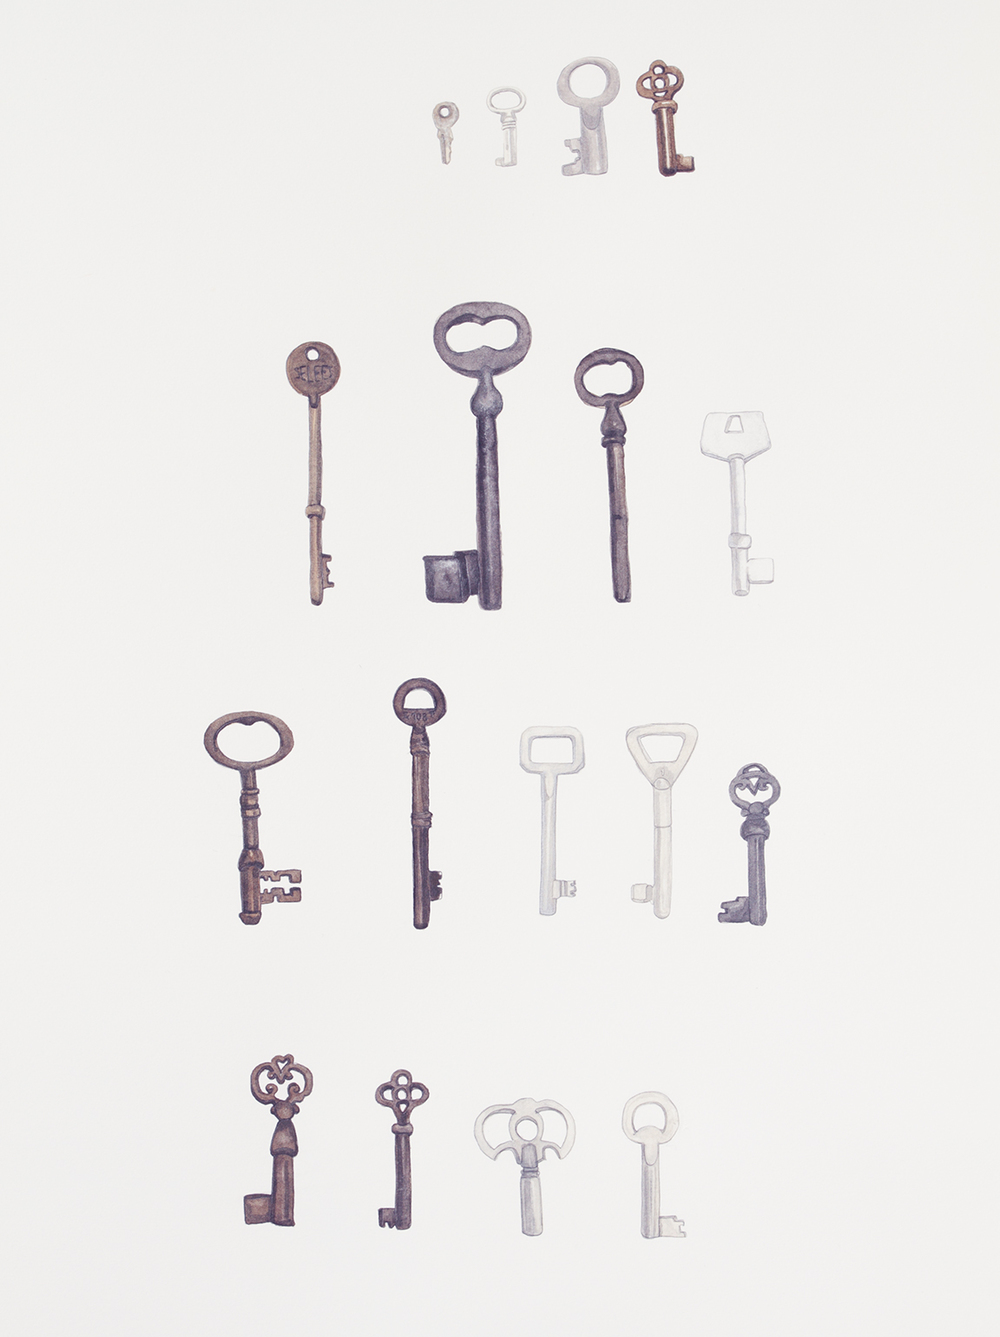 Seventeen keys to find my way home  . 2013 . watercolour on paper . 75 x 56 cm